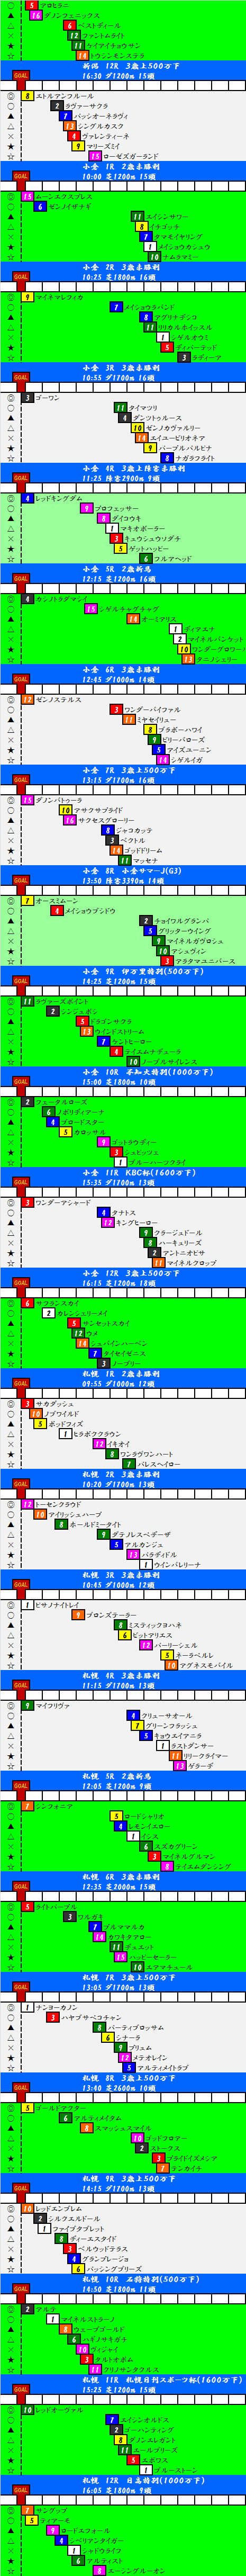 201408022.png